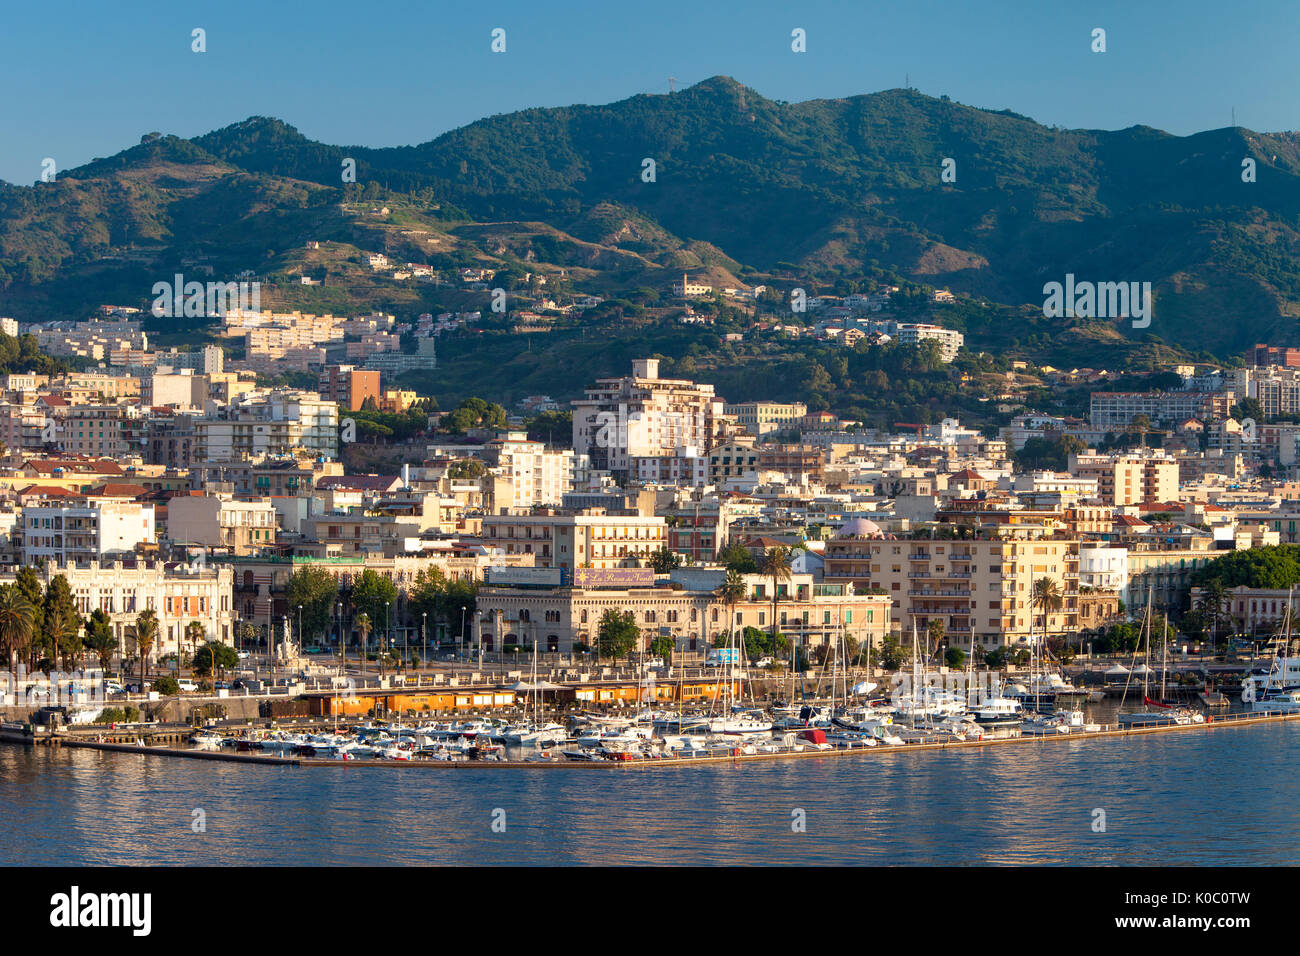 Early morning view over Marina and town of Messina, Sicily, Italy - Stock Image